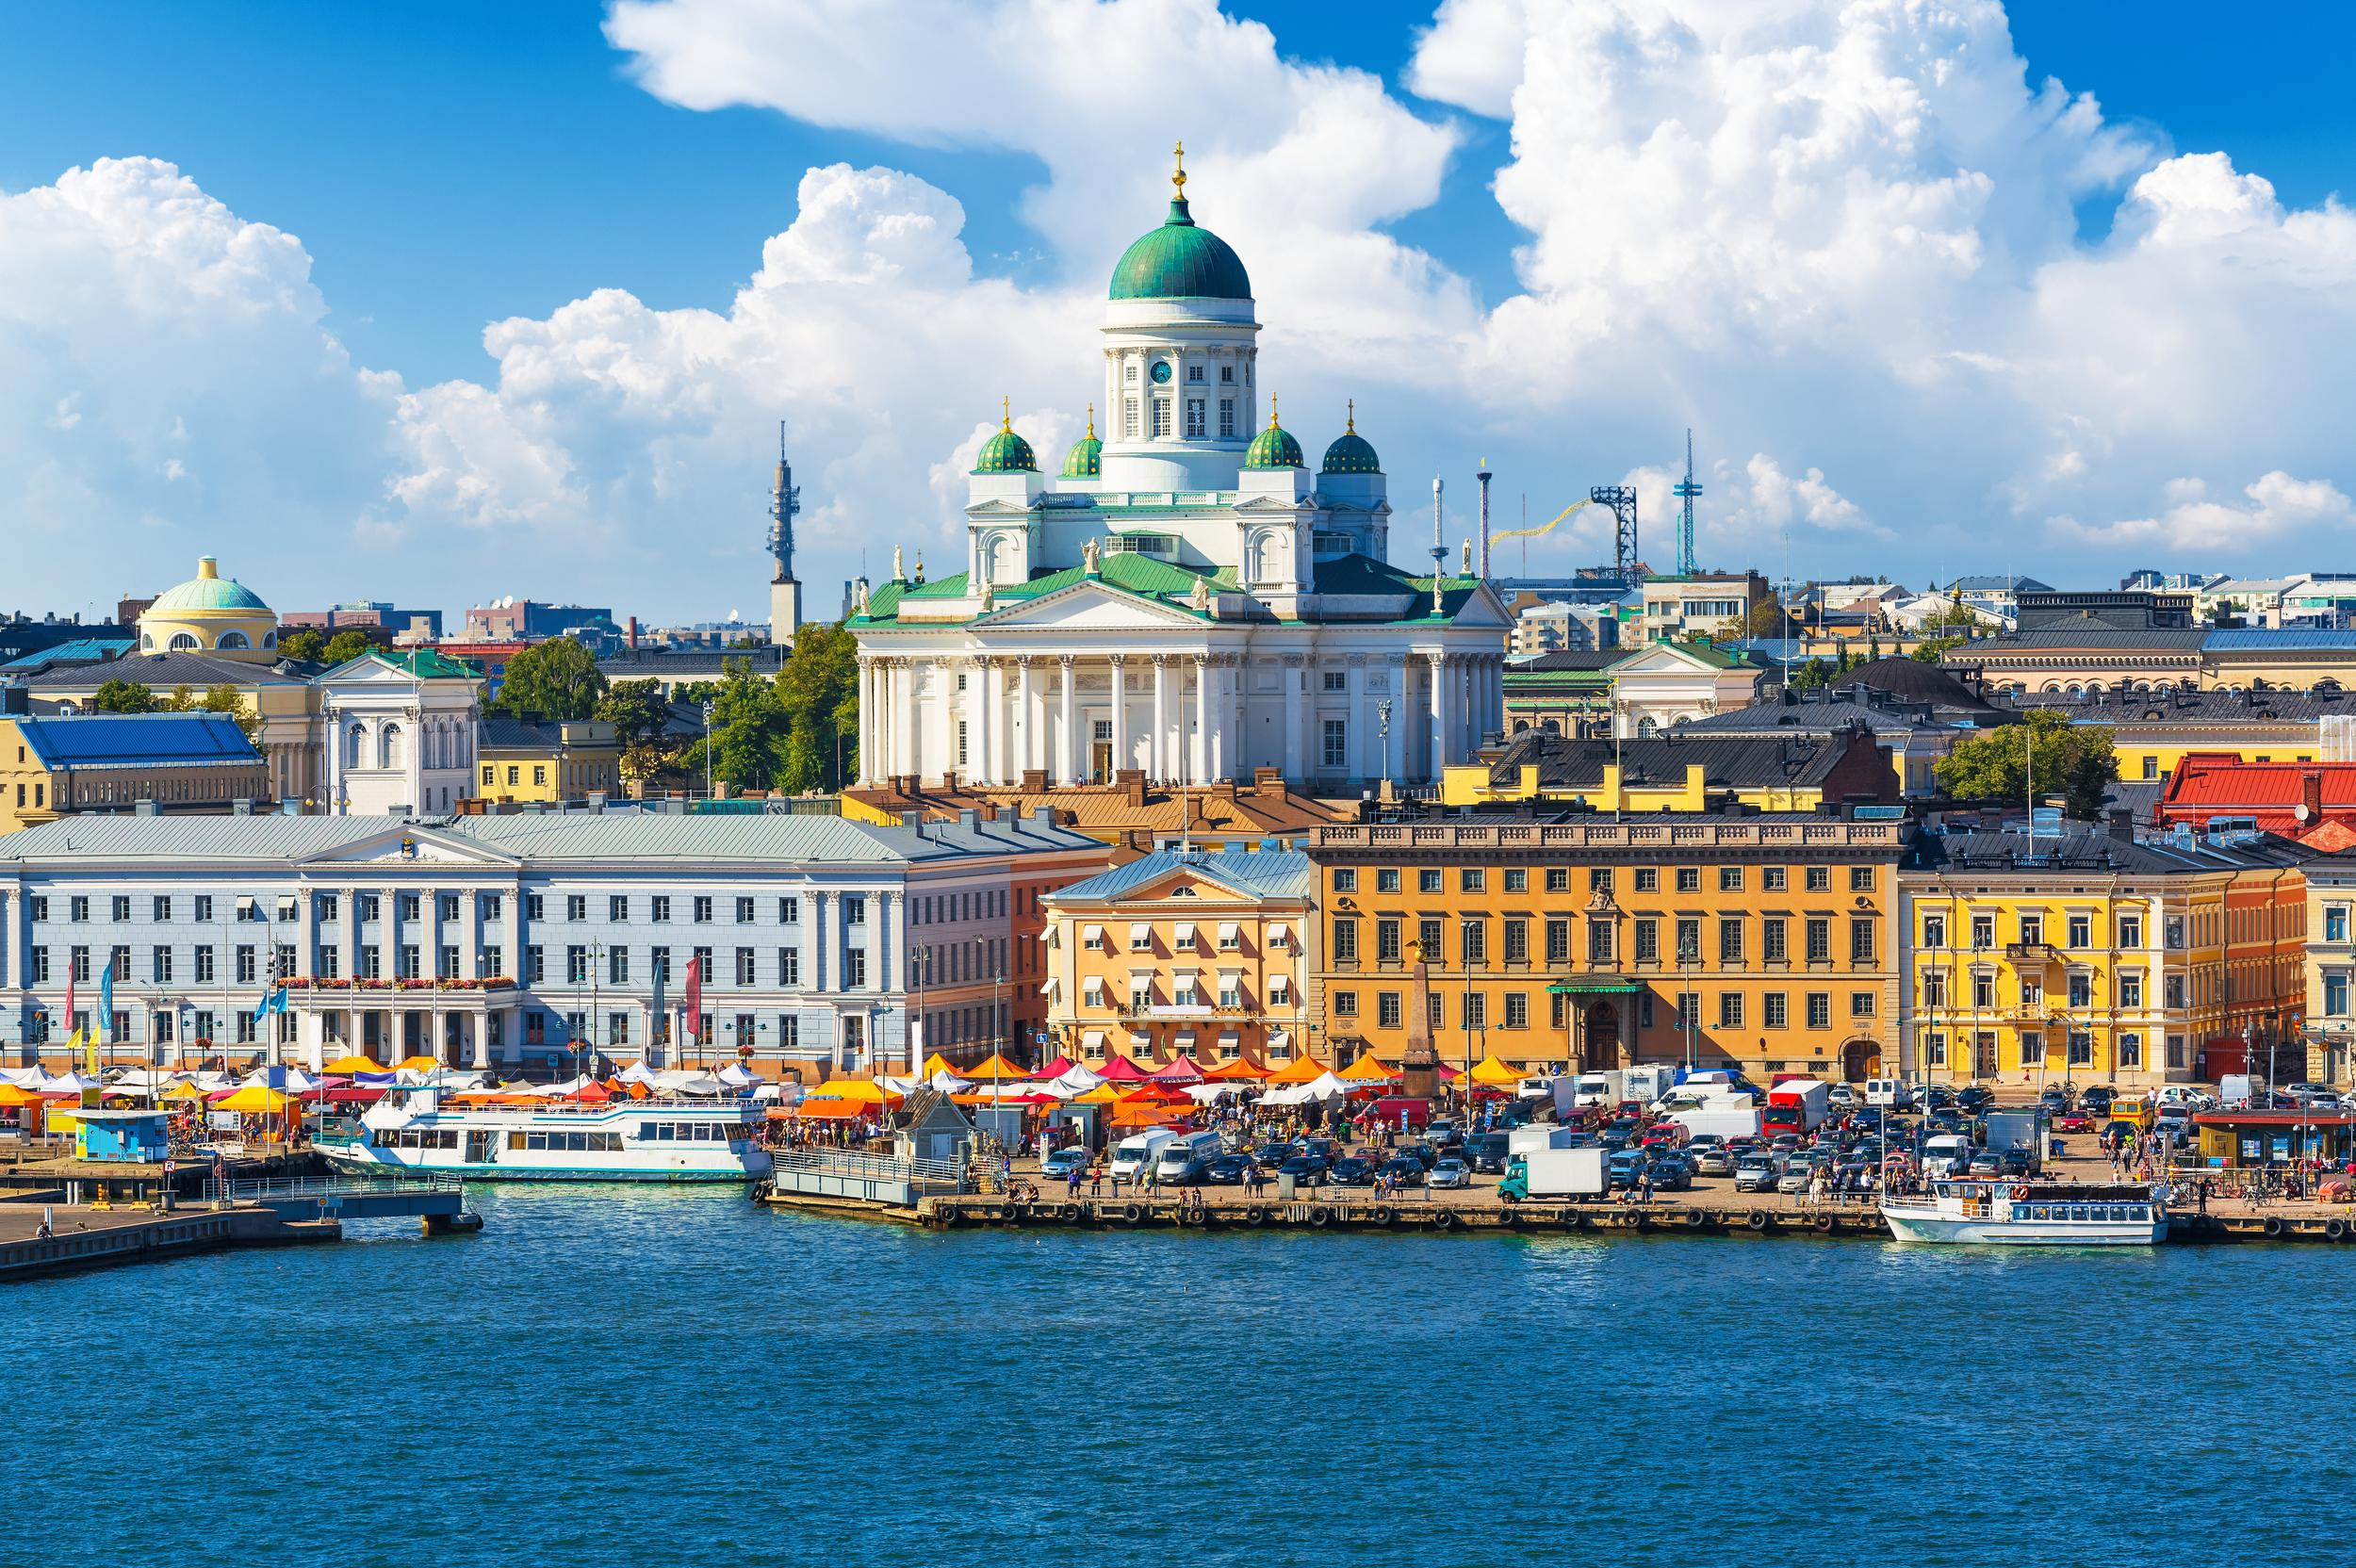 """<p><a href=""""http://www.finnair.com/gb/gb/"""" target=""""_blank"""">Finnair</a> is set to launch a seasonal service from Edinburgh to Helsinki from £239 return. The three times weekly service begins on 18 April 2016 and will operate to 27 October 2016. Sitting on the edge of the Baltic, the modern city of Helsinki has surrounding nature that blends seamlessly with high-tech achievements and contemporary trends.</p>"""